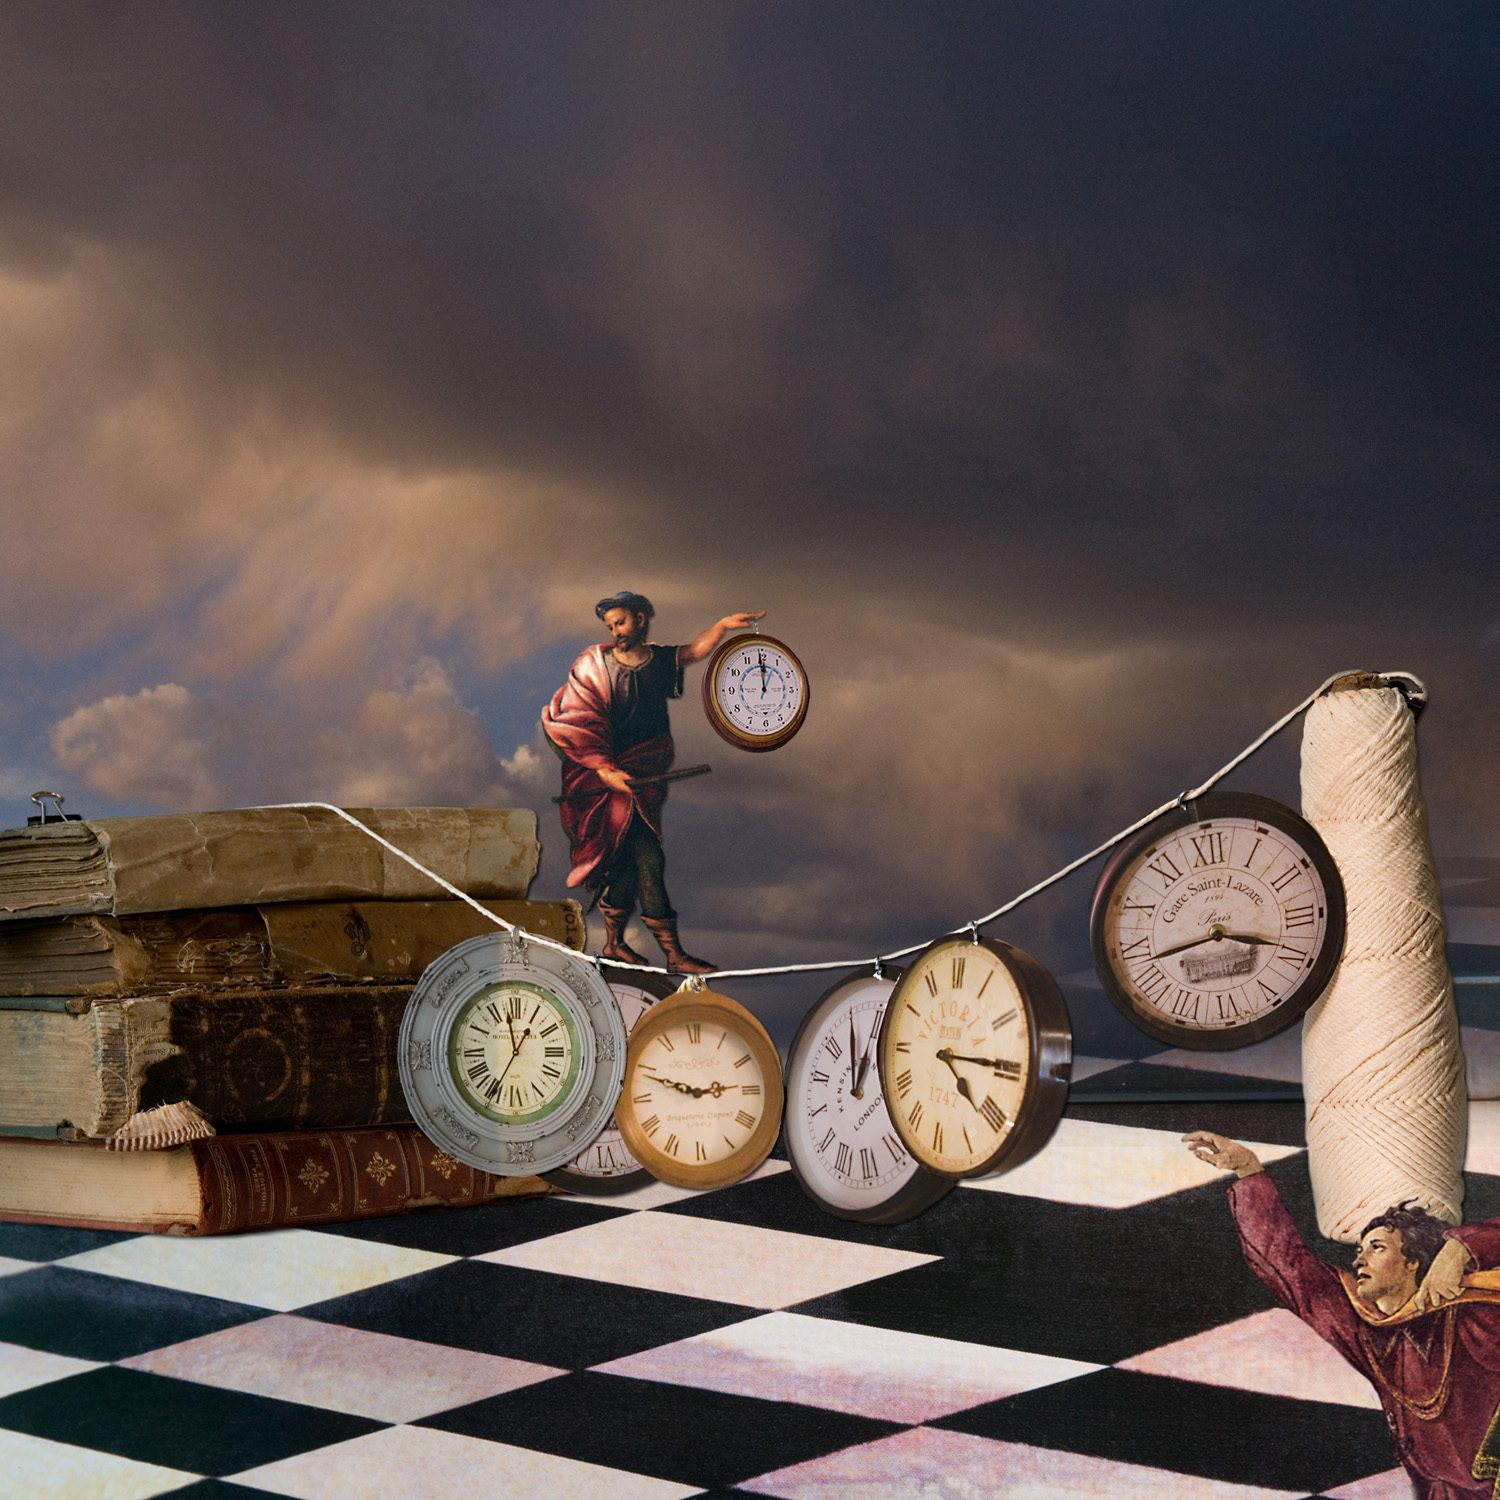 The time thief was not among those that denied the existence of time